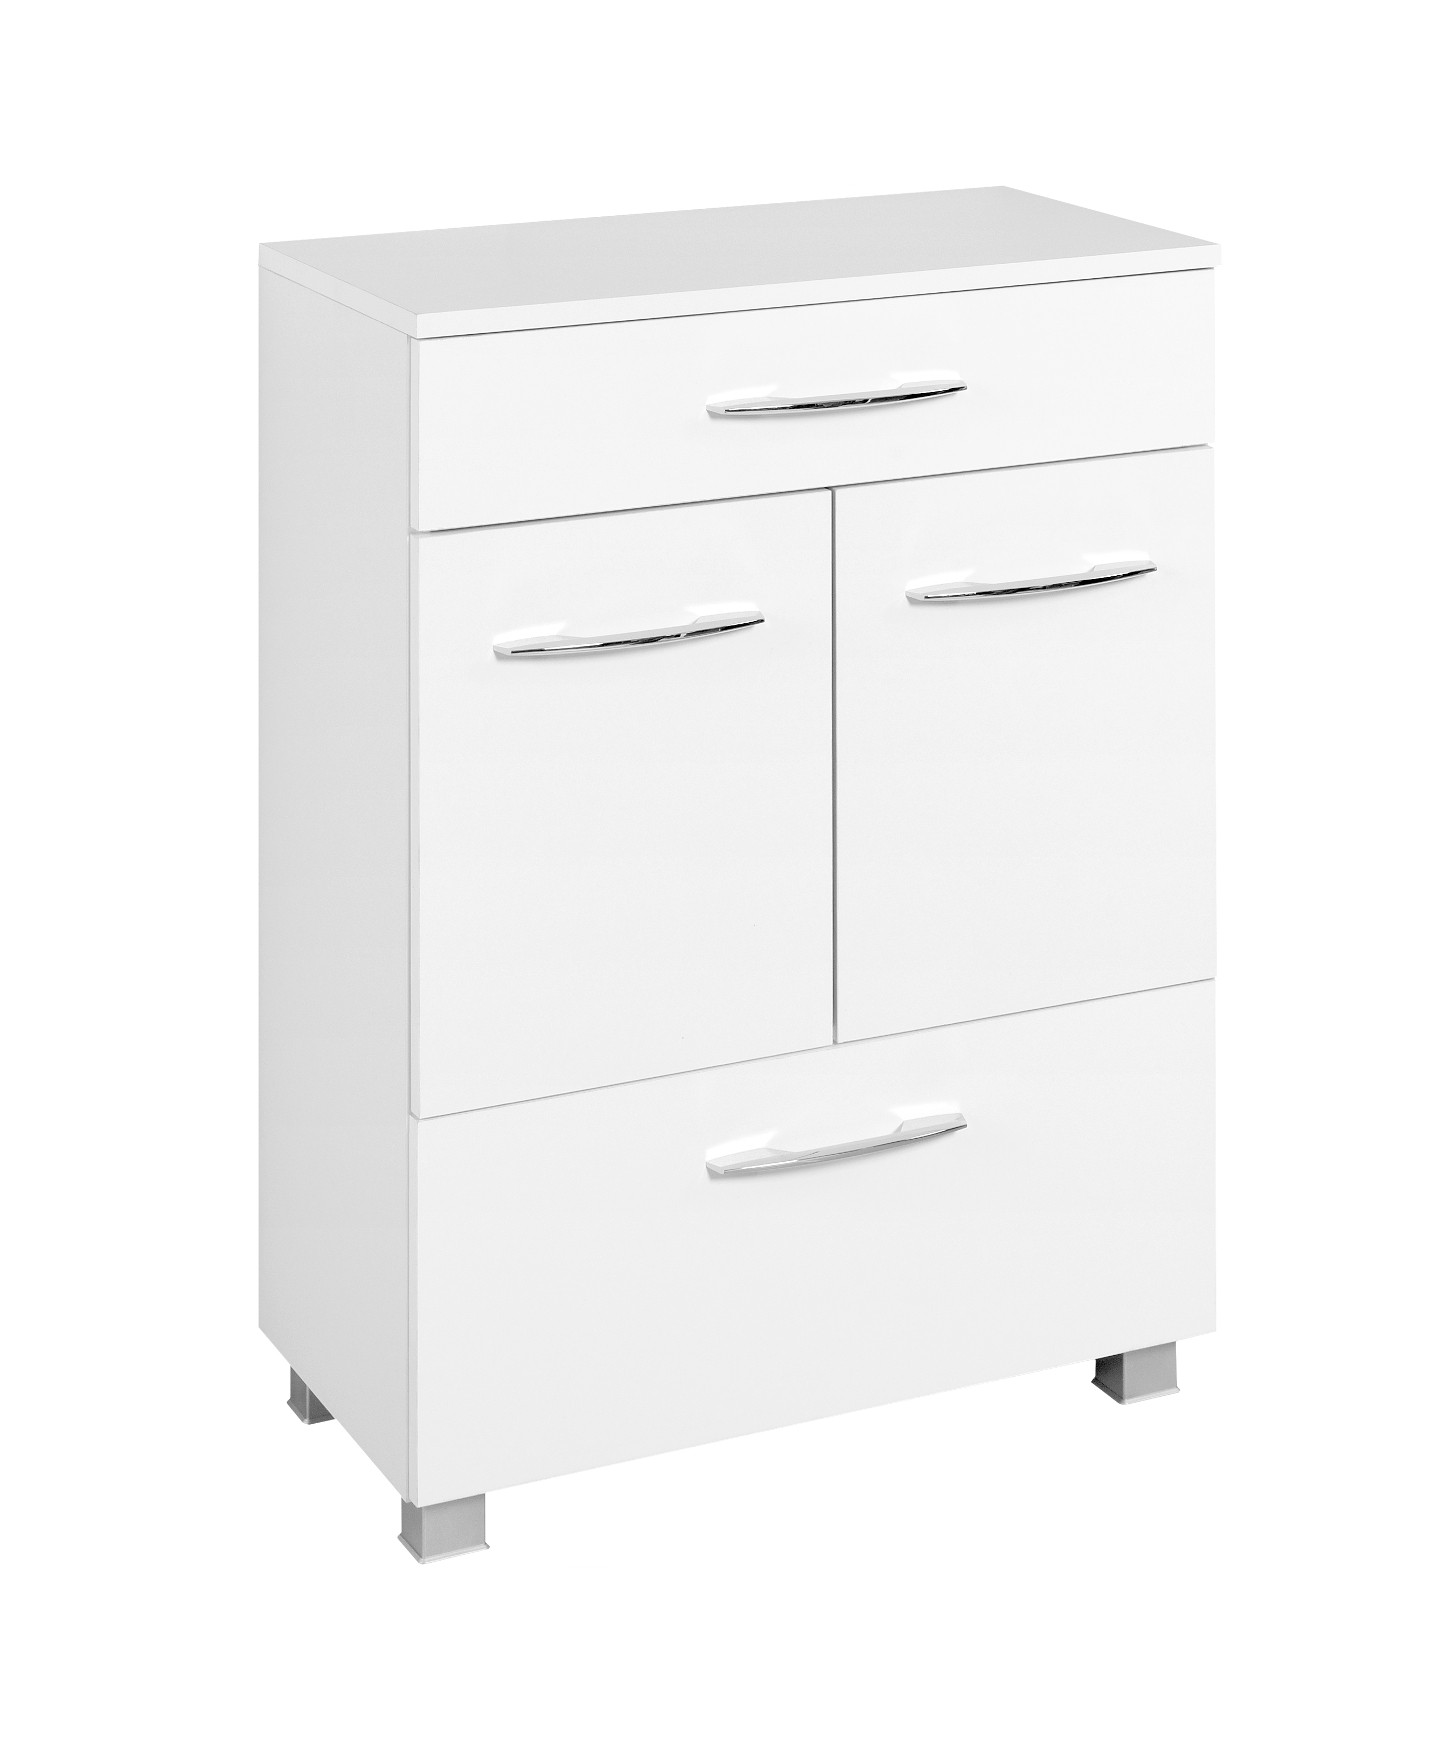 badezimmer bad unterschrank portofino badschrank badm bel 60 cm weiss ebay. Black Bedroom Furniture Sets. Home Design Ideas